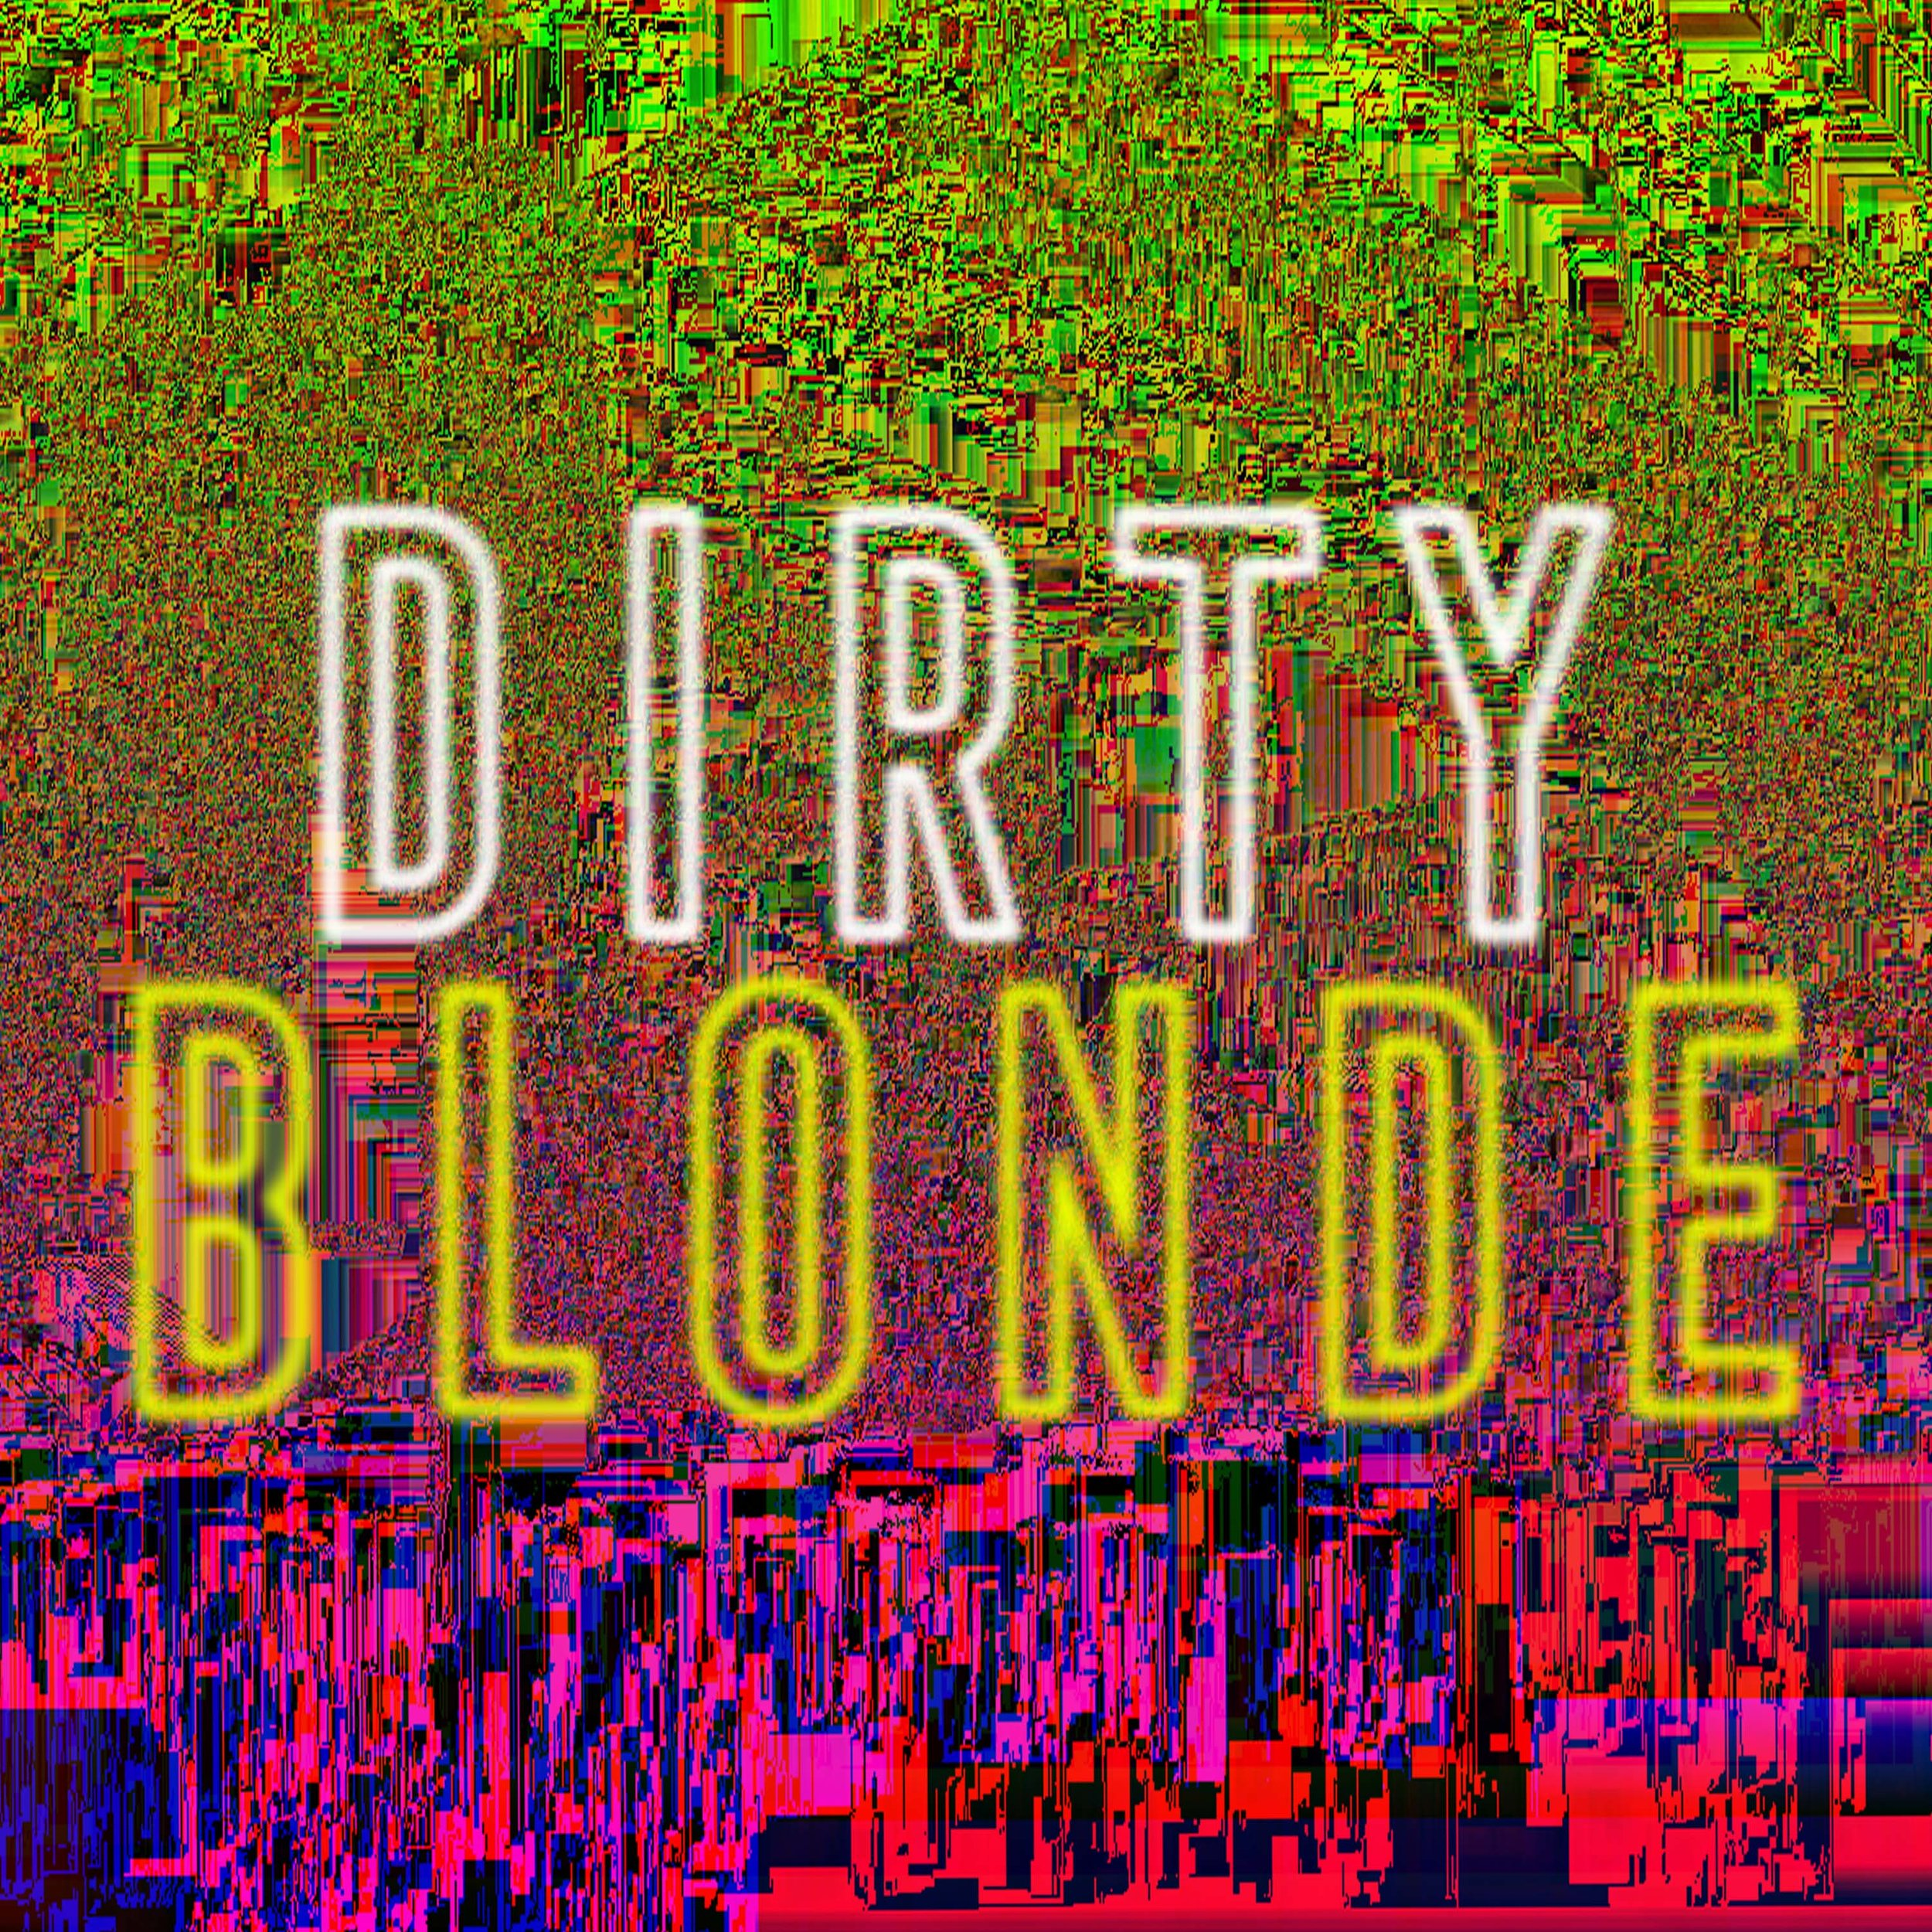 DirtyBlonde_Glitch1.jpg